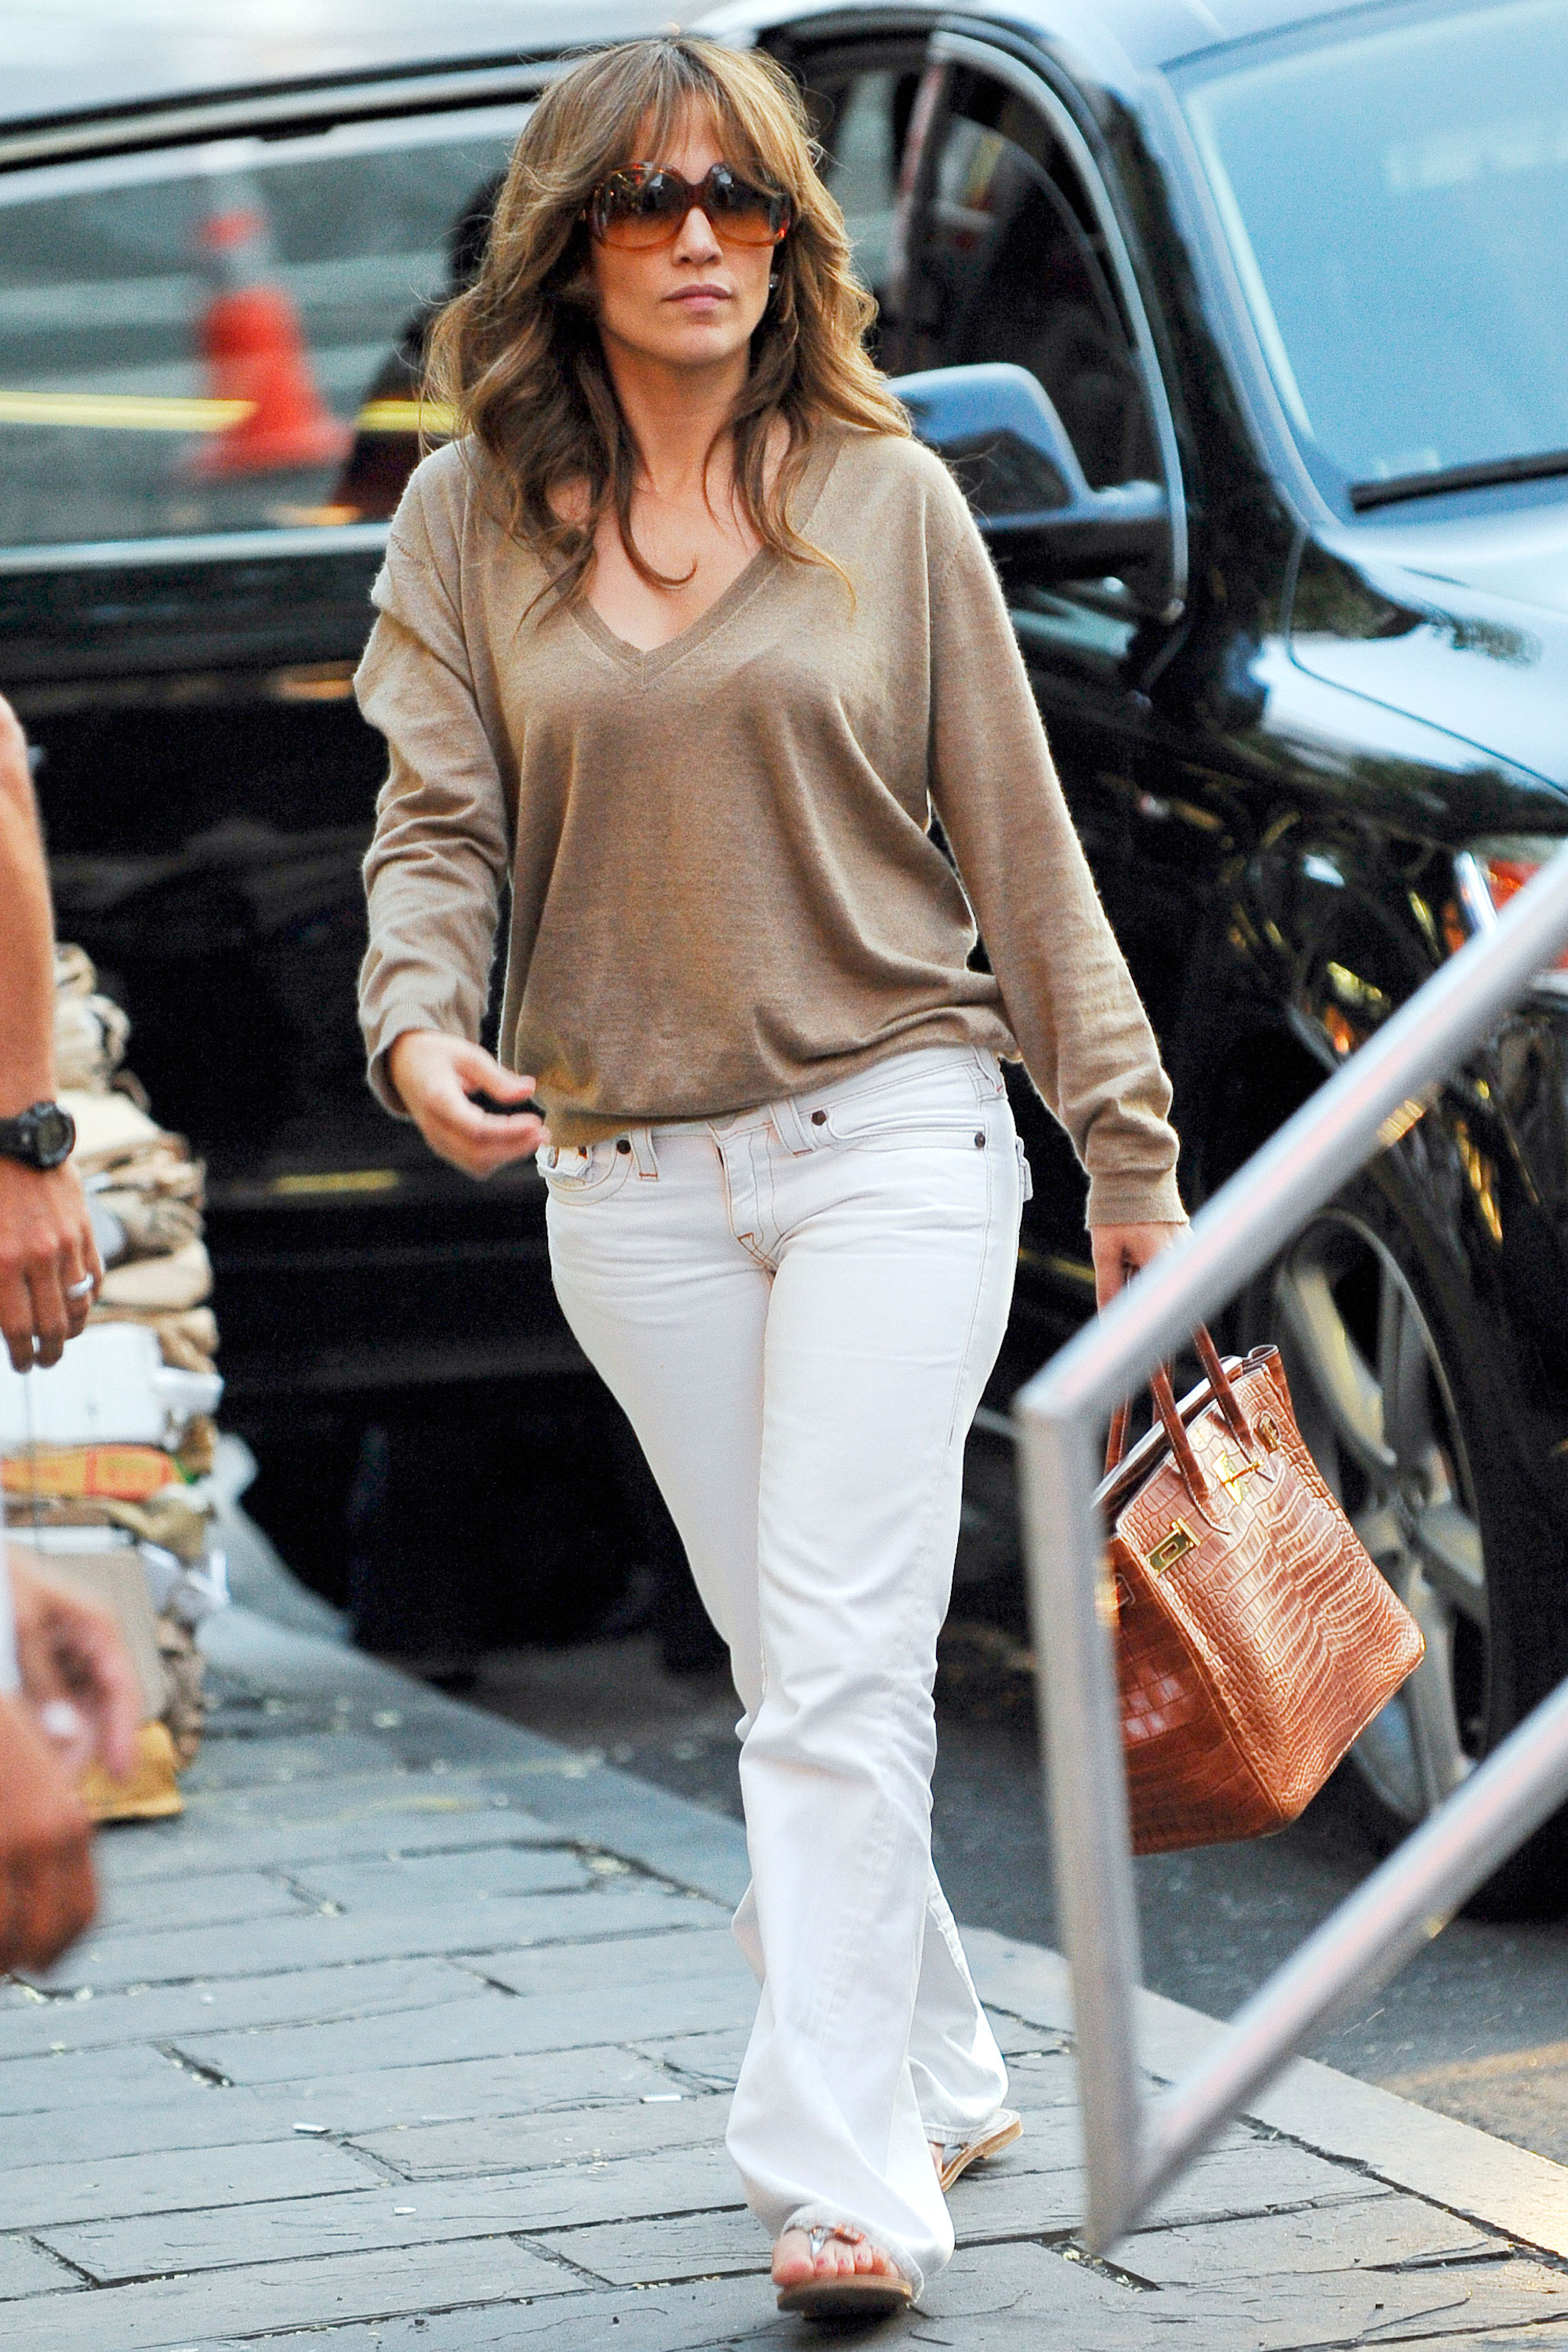 original hermes birkin bag price - theLIST: Hermes Birkin Bags - Celebrities with Birkin Bags